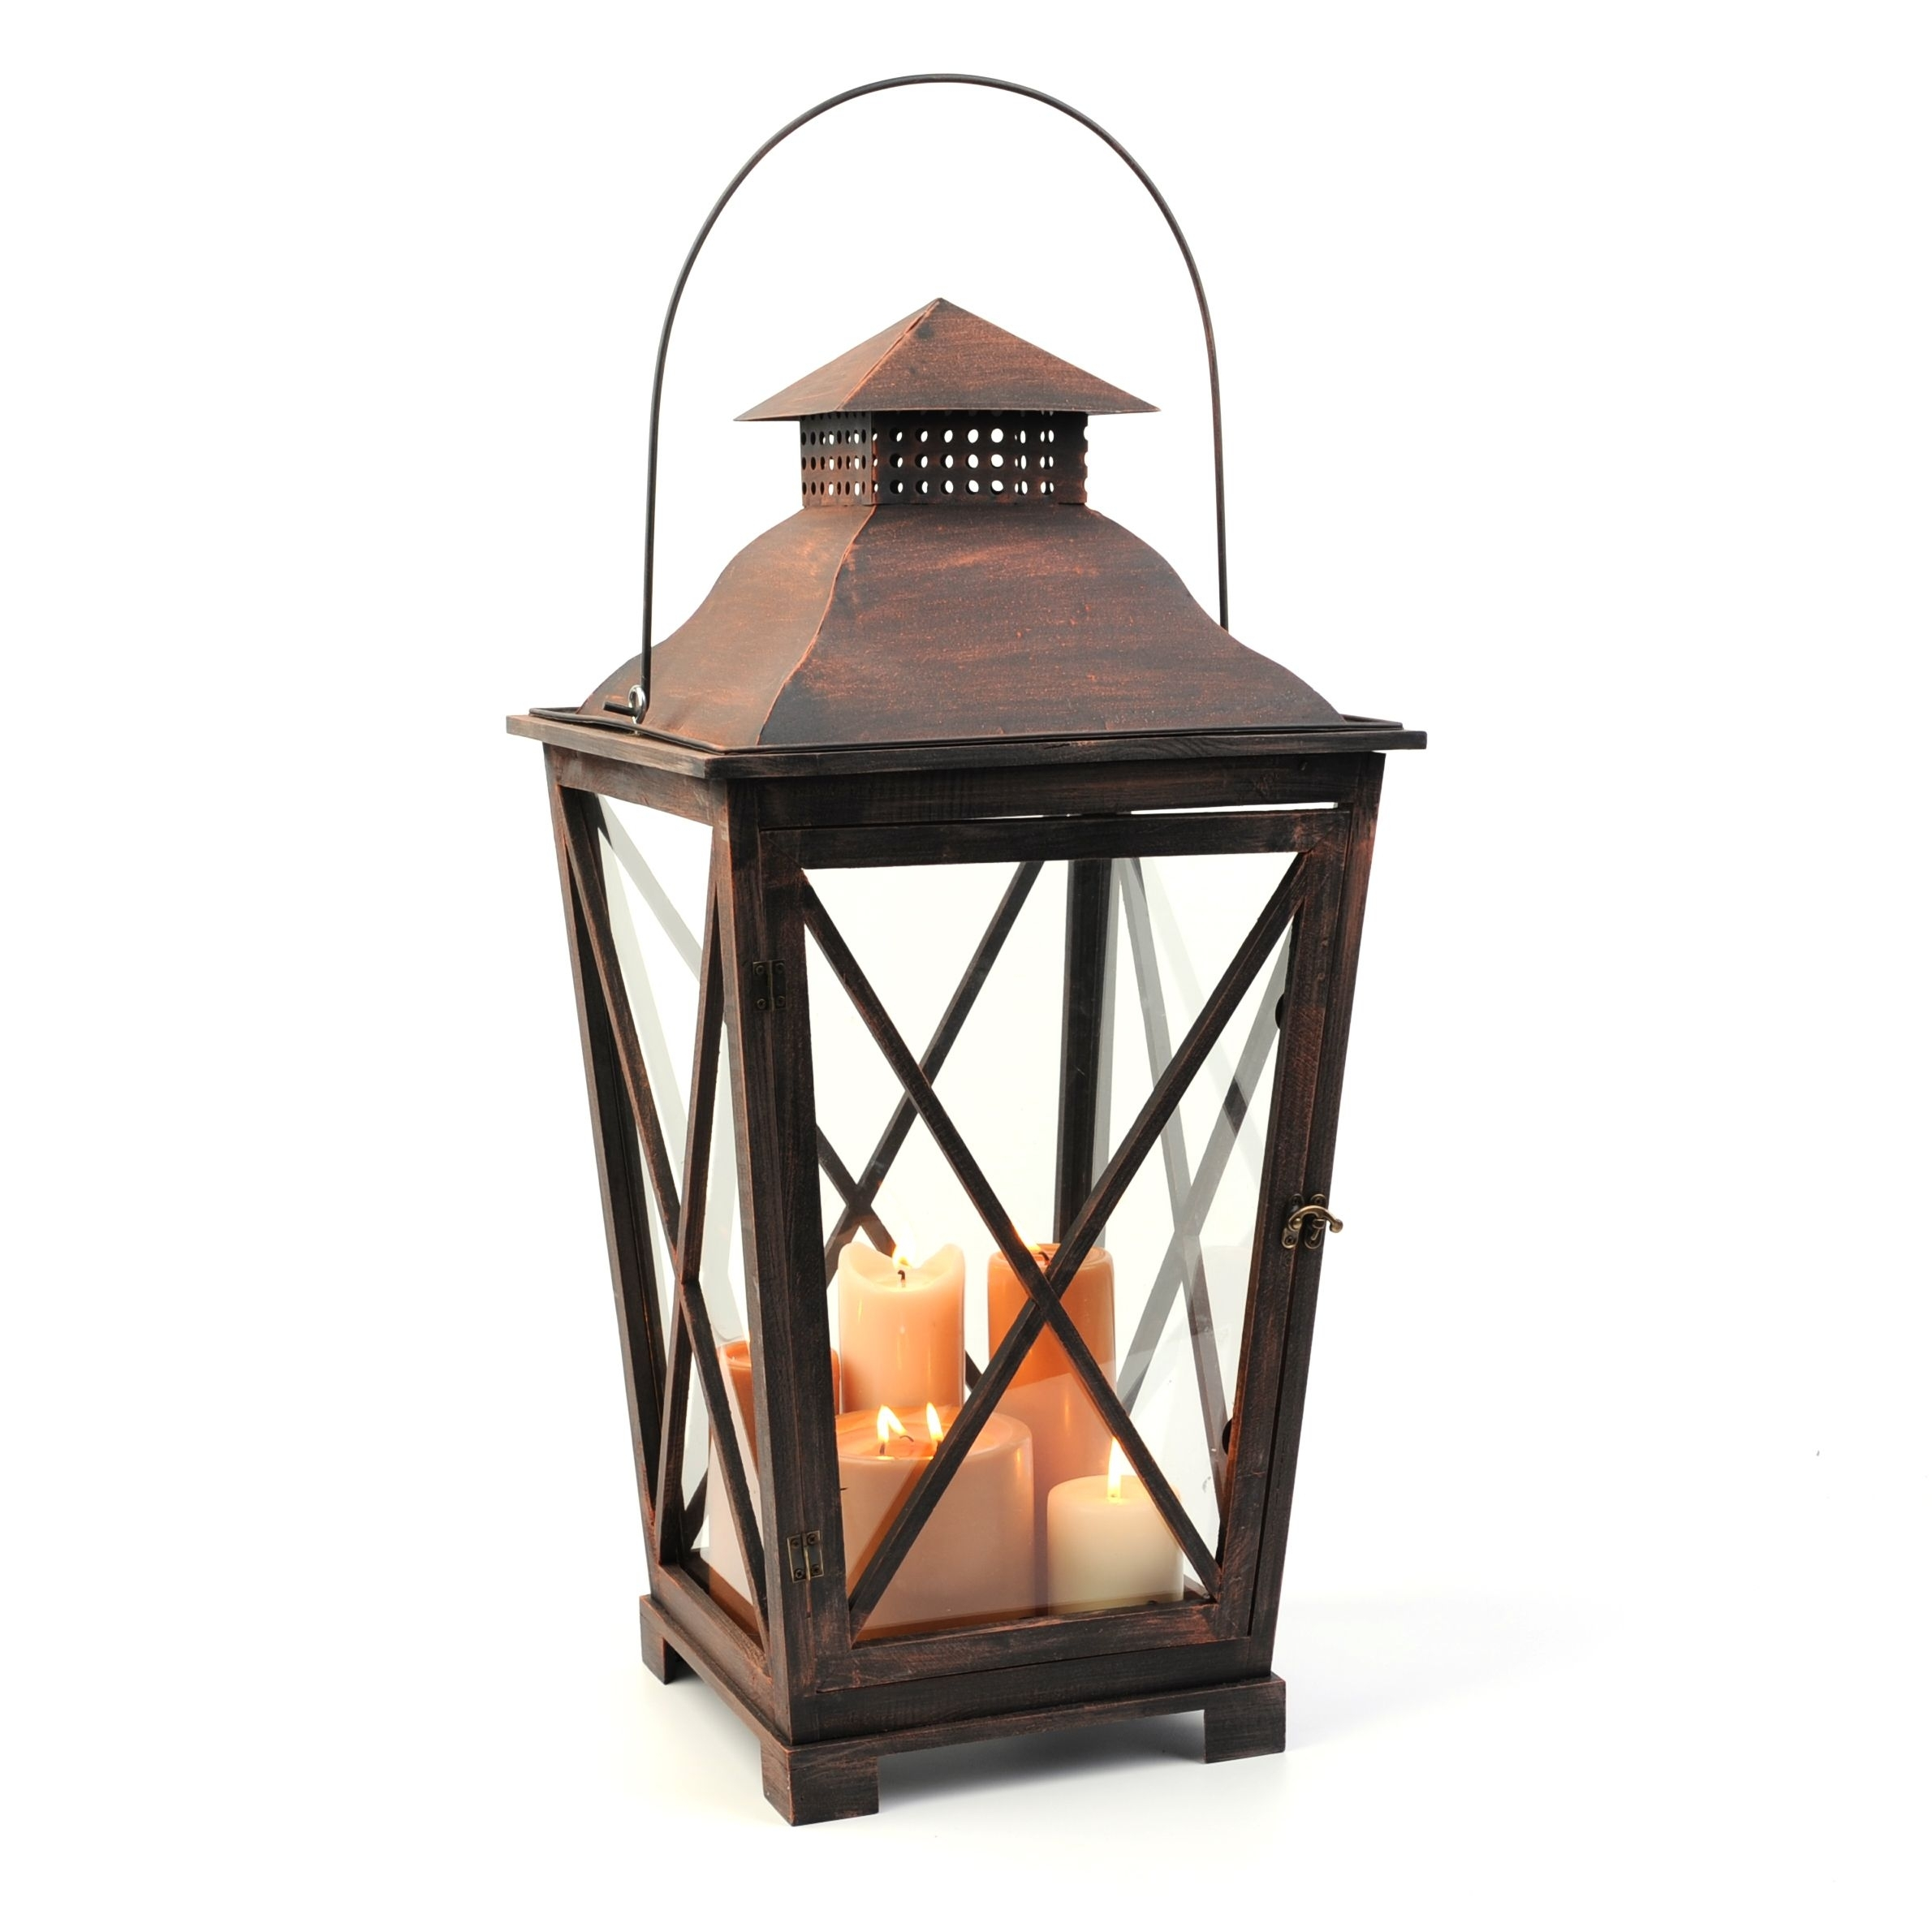 Oversized Lantern $79.99 | A Thing Or 2 | Pinterest with Outdoor Oversized Lanterns (Image 14 of 20)